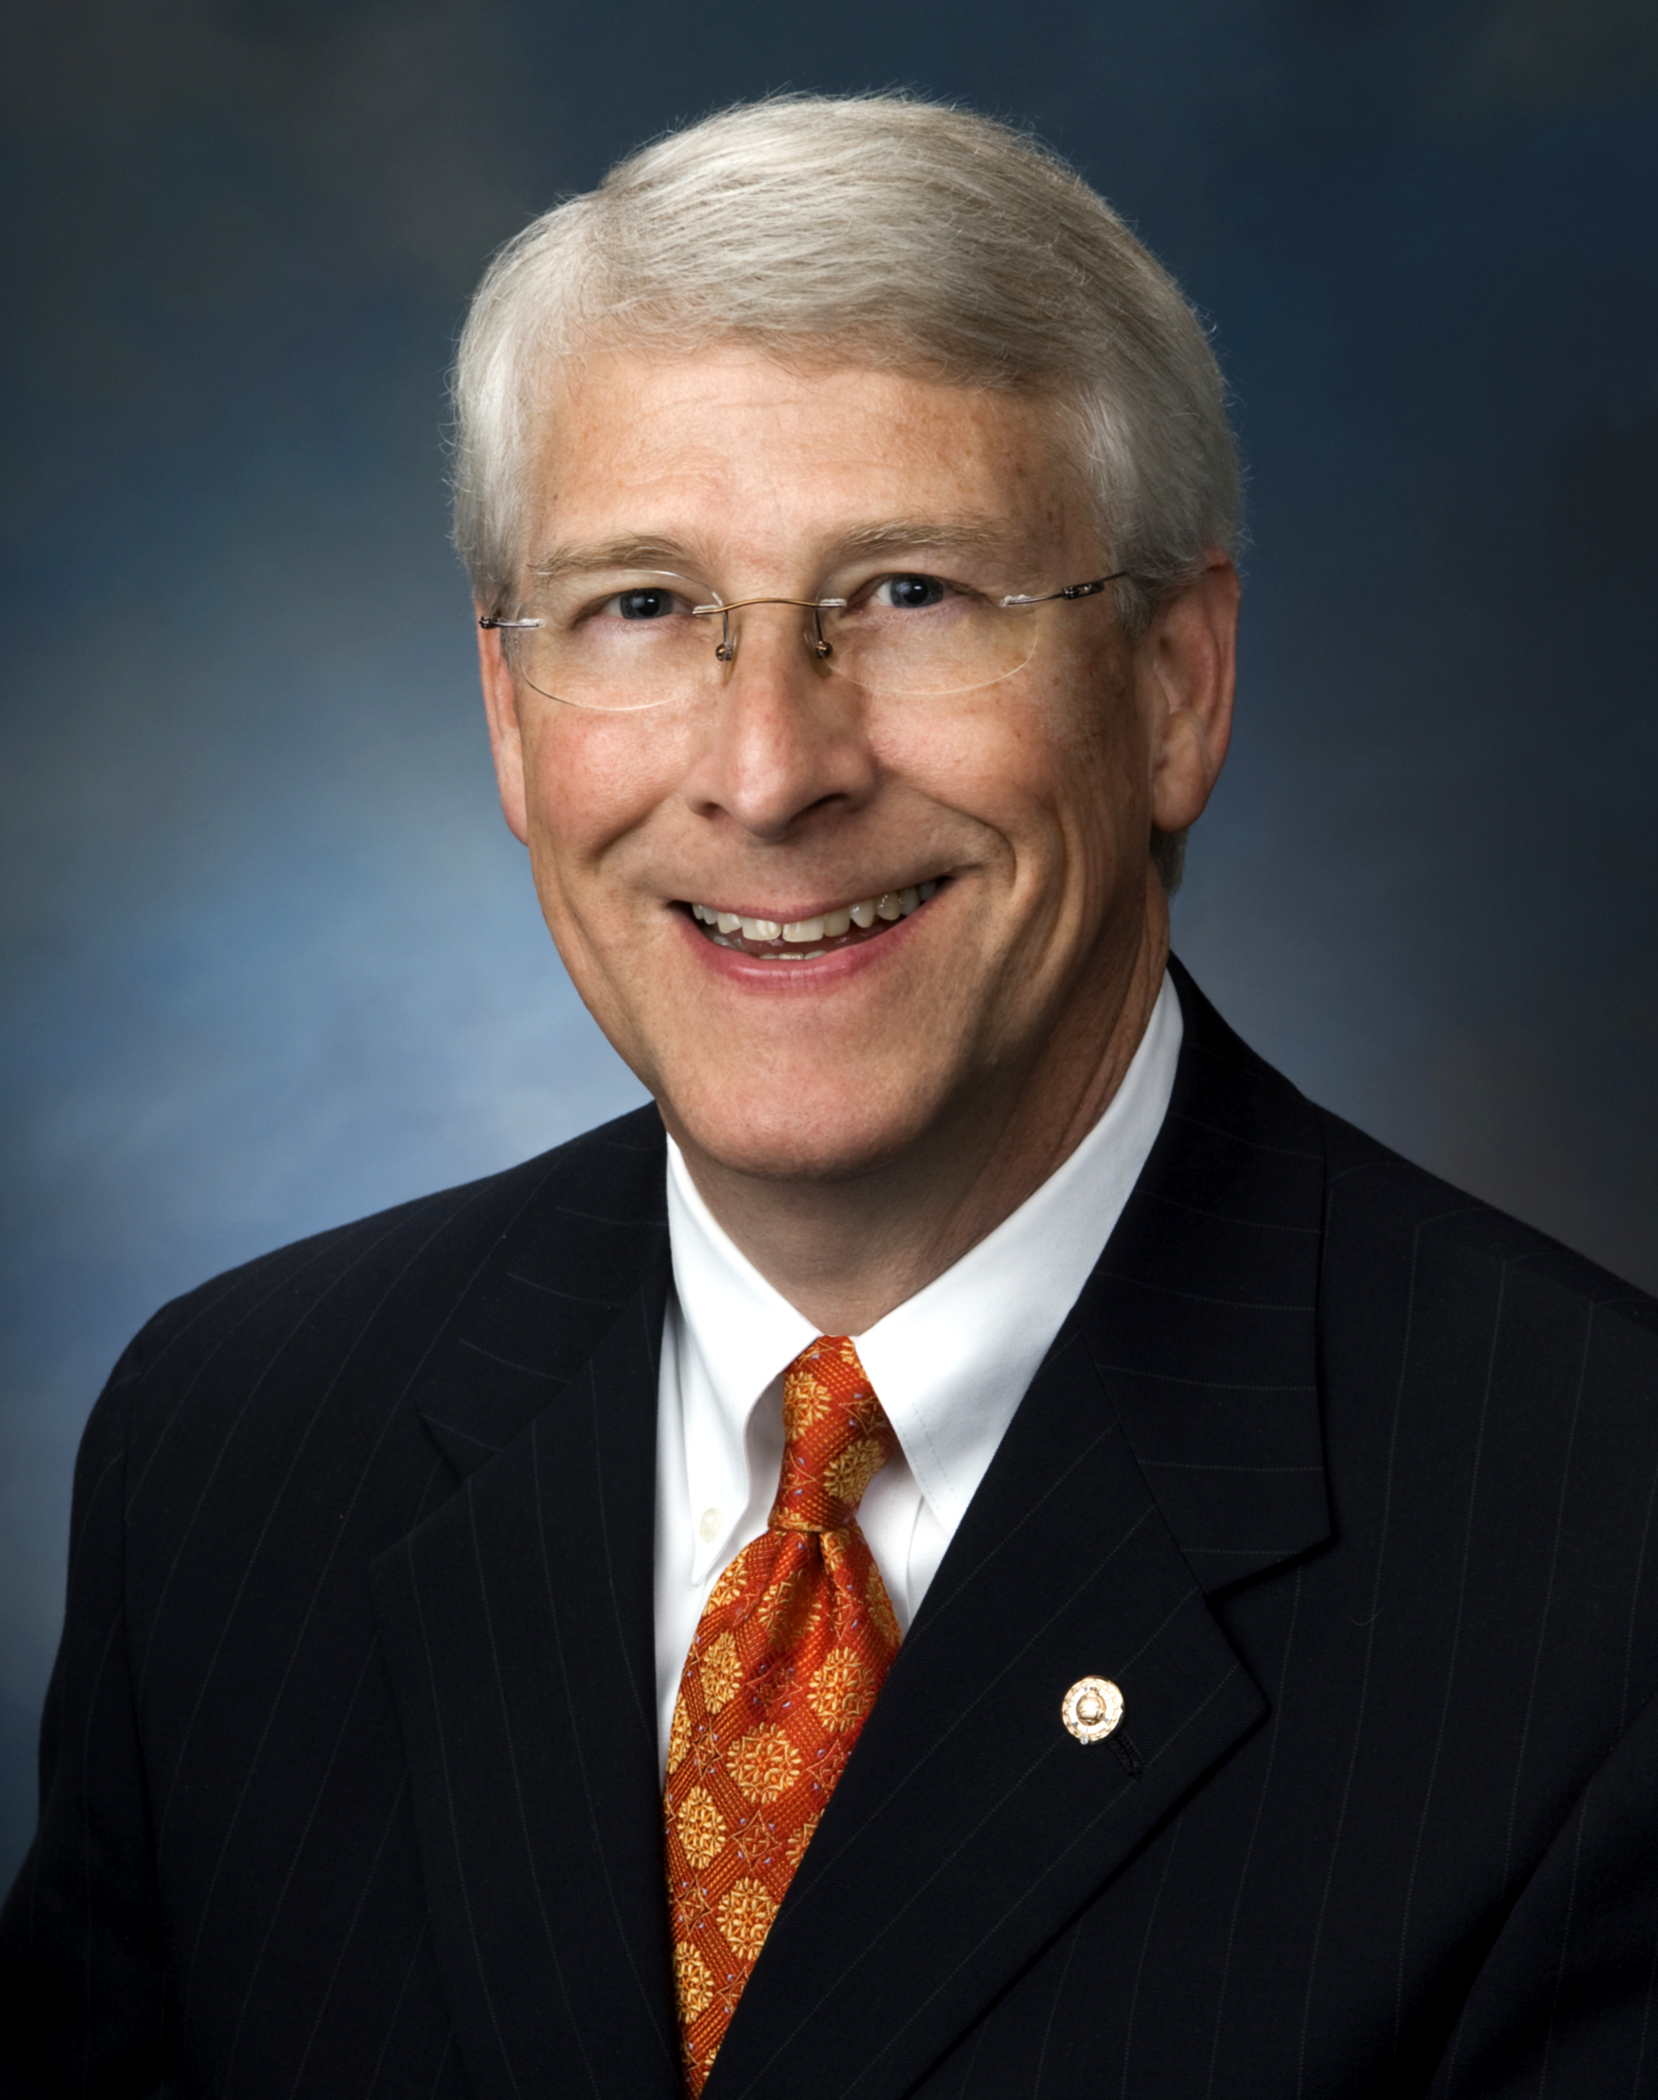 Photo of Roger Wicker